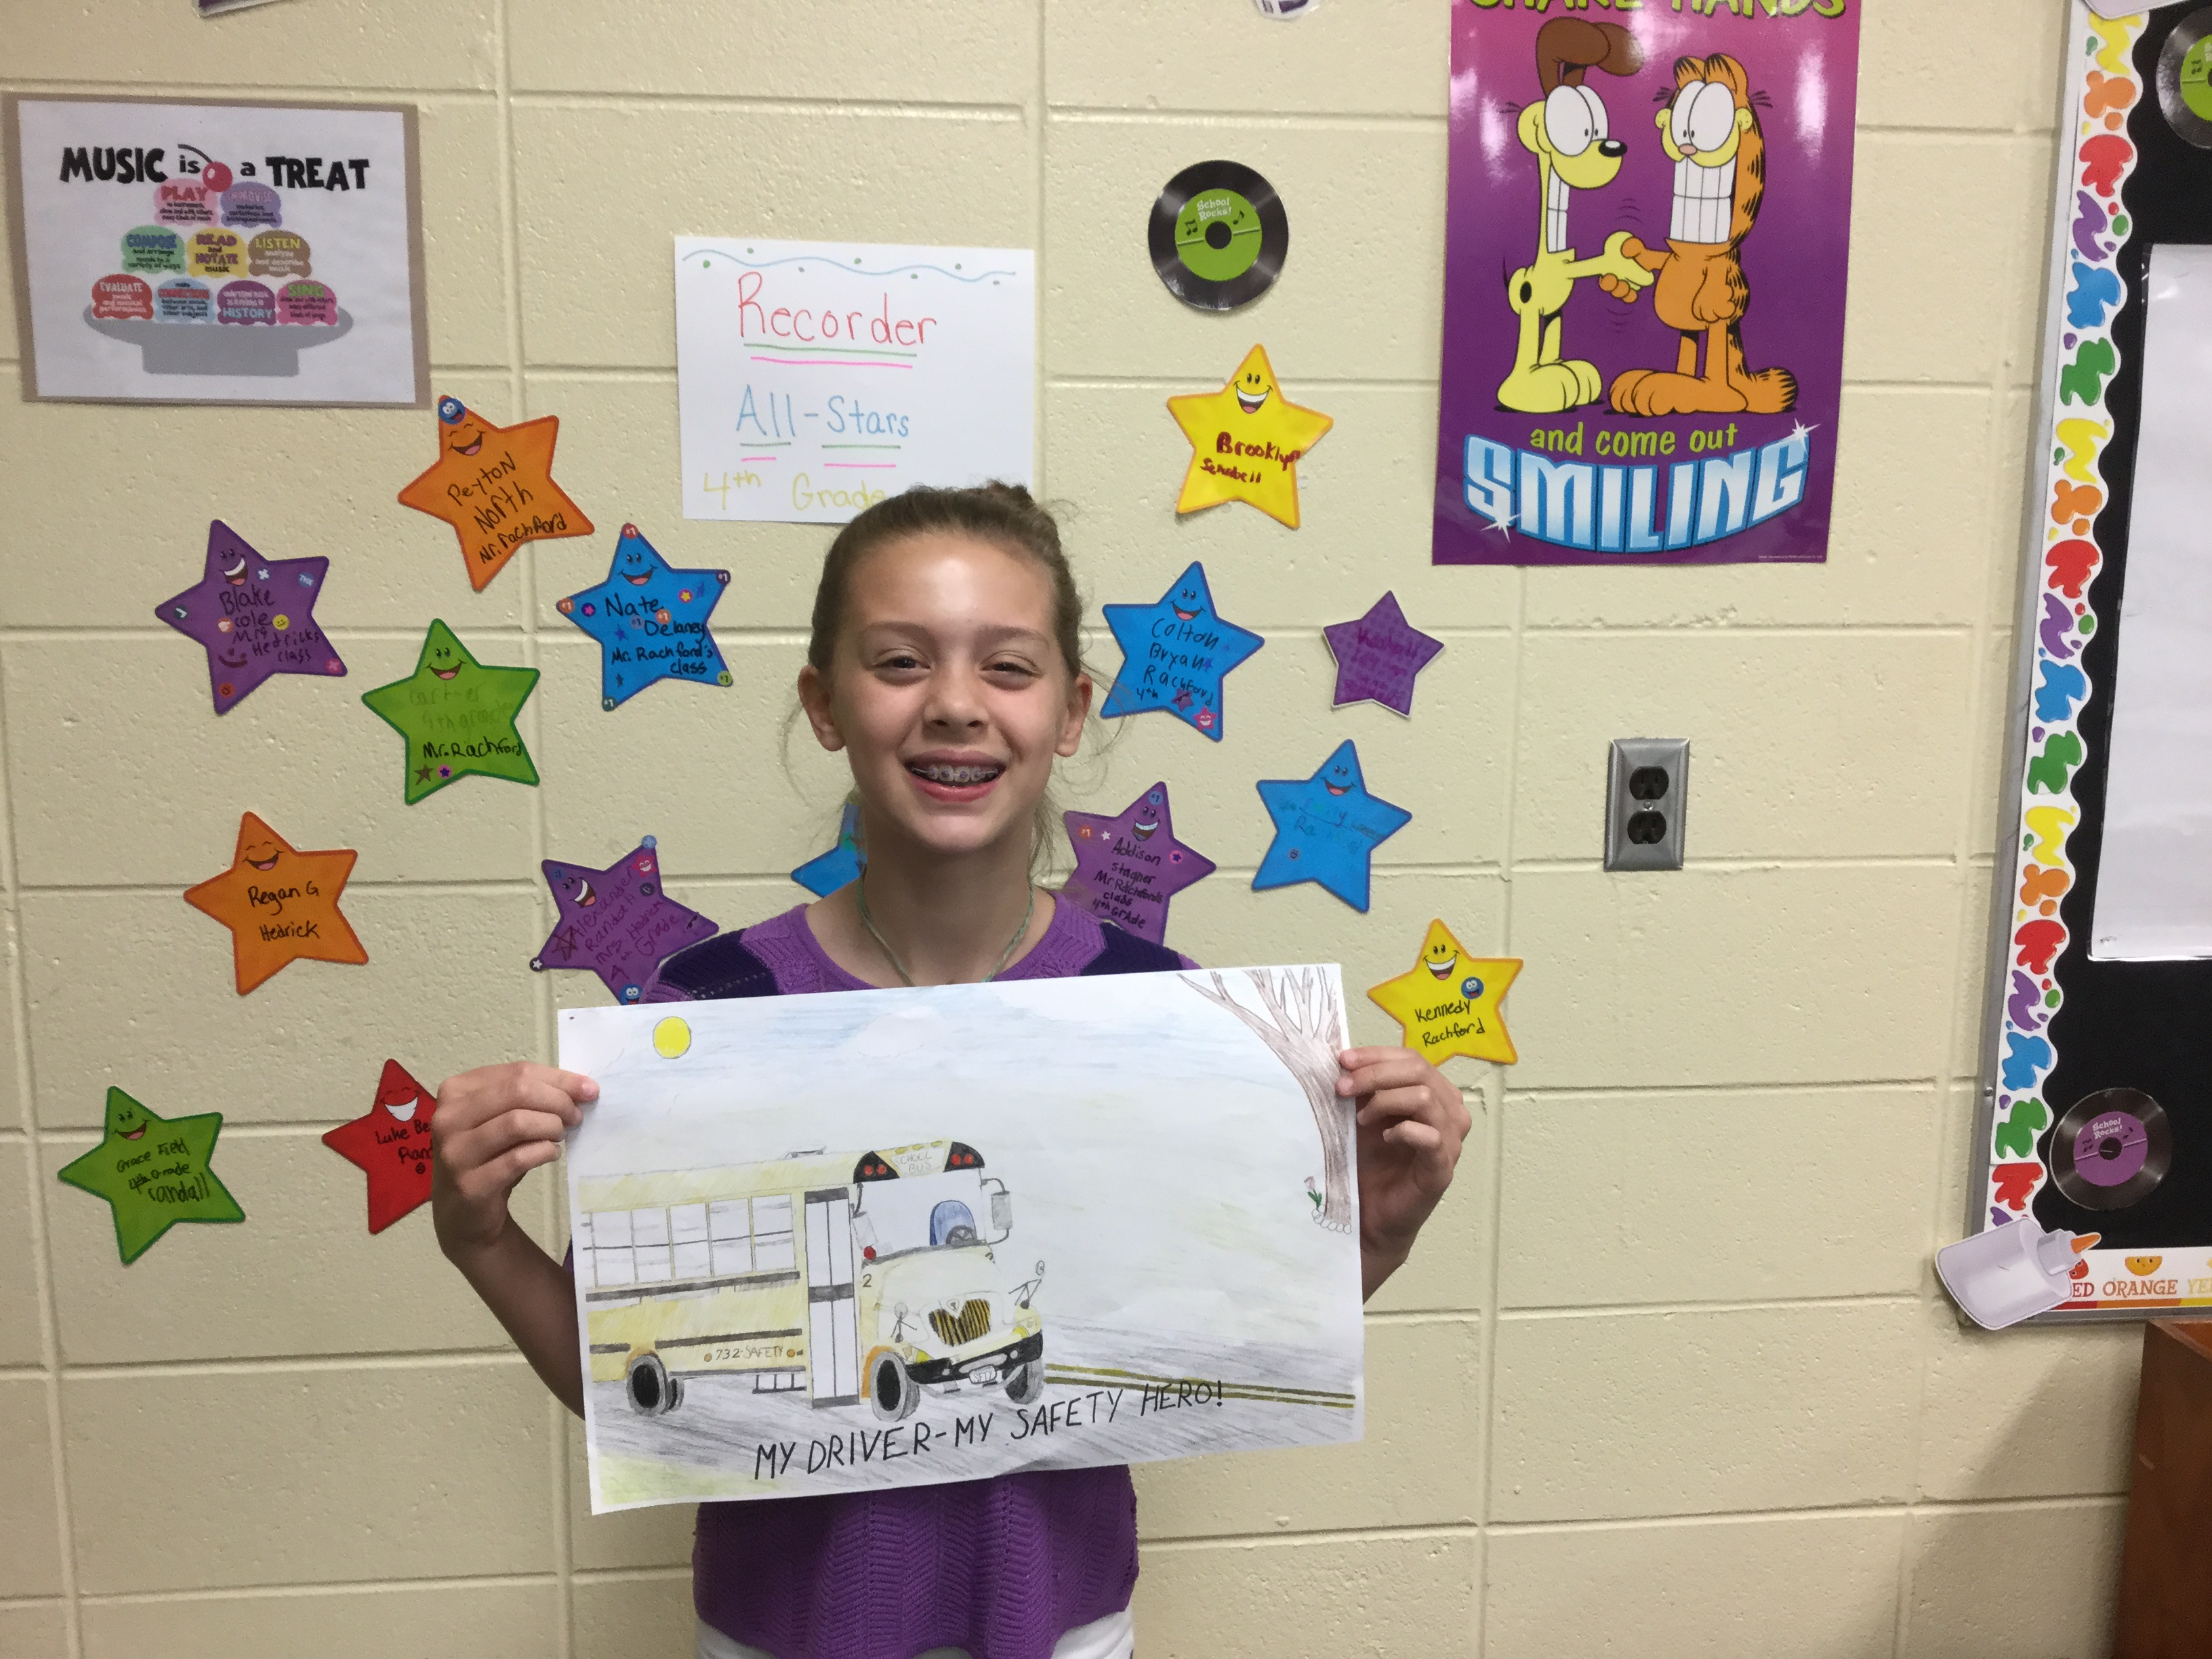 Reiley student wins poster contest